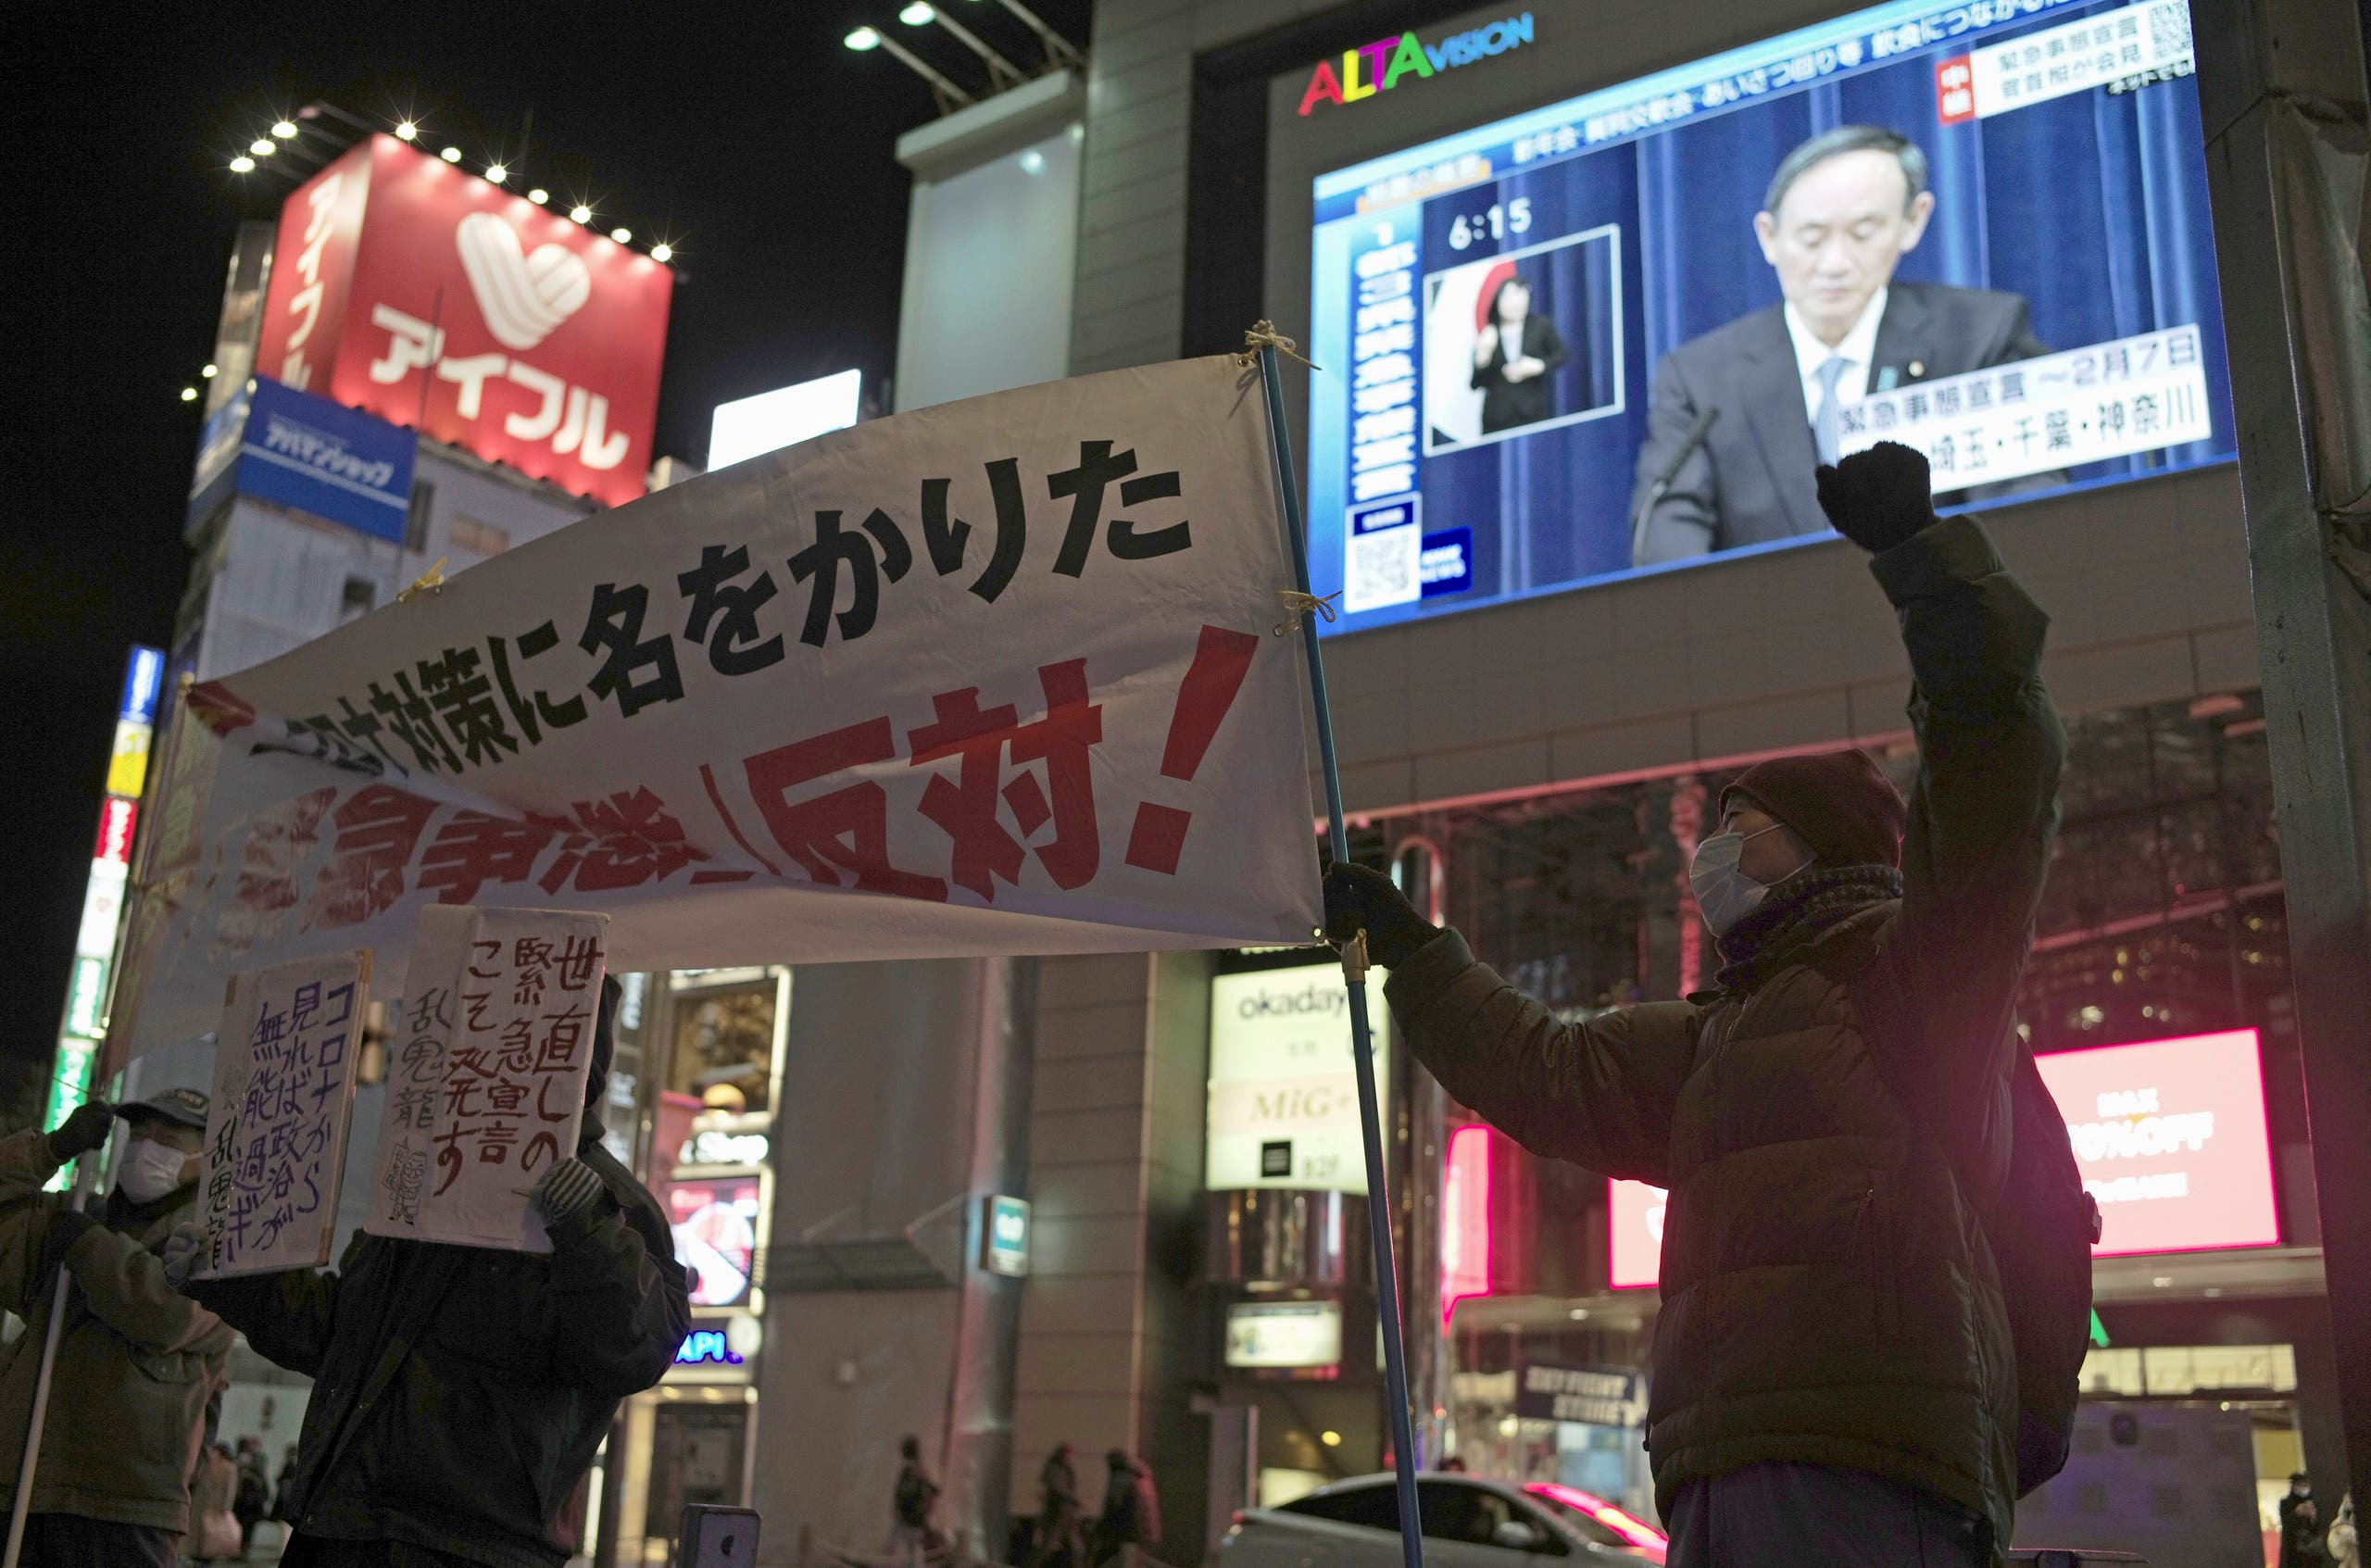 Protesters chant slogans against a state of emergency as Japanese Prime Minister Yoshihide Suga shown on a billboard screen speaks of a state of emergency in Tokyo on Thursday, Jan. 7, 2021.(AP)